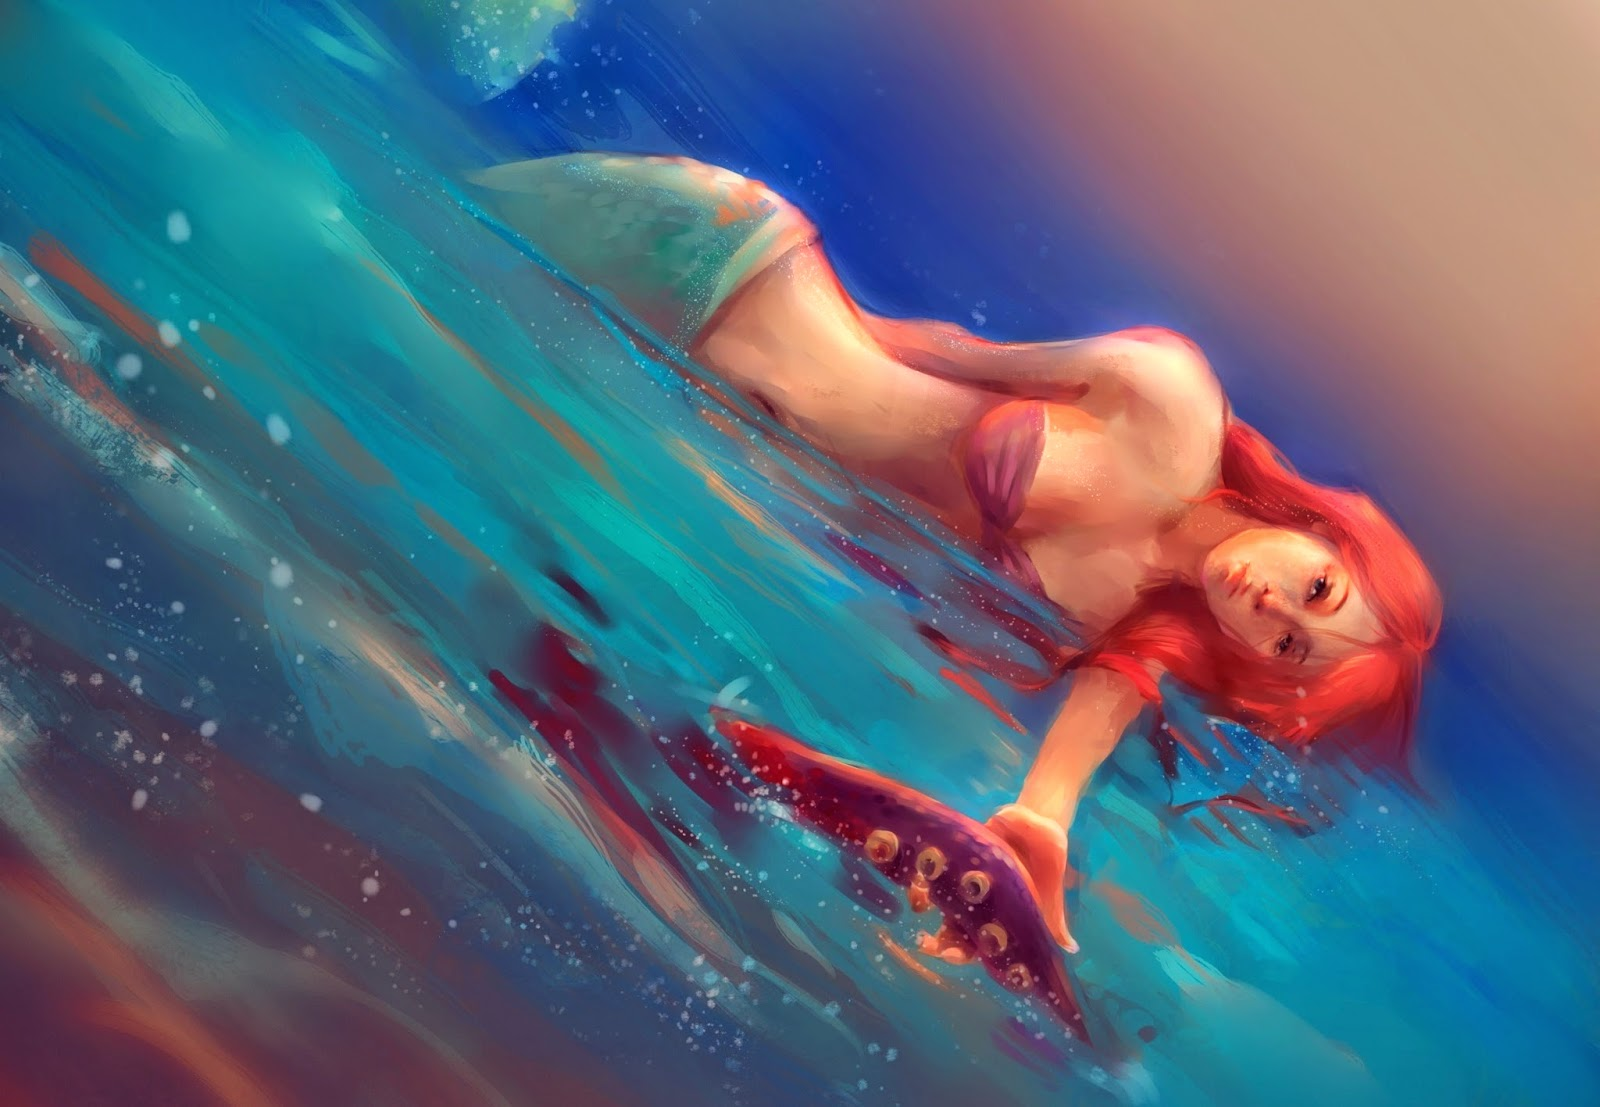 mermaid-painting-images-stock-photos-download.jpg